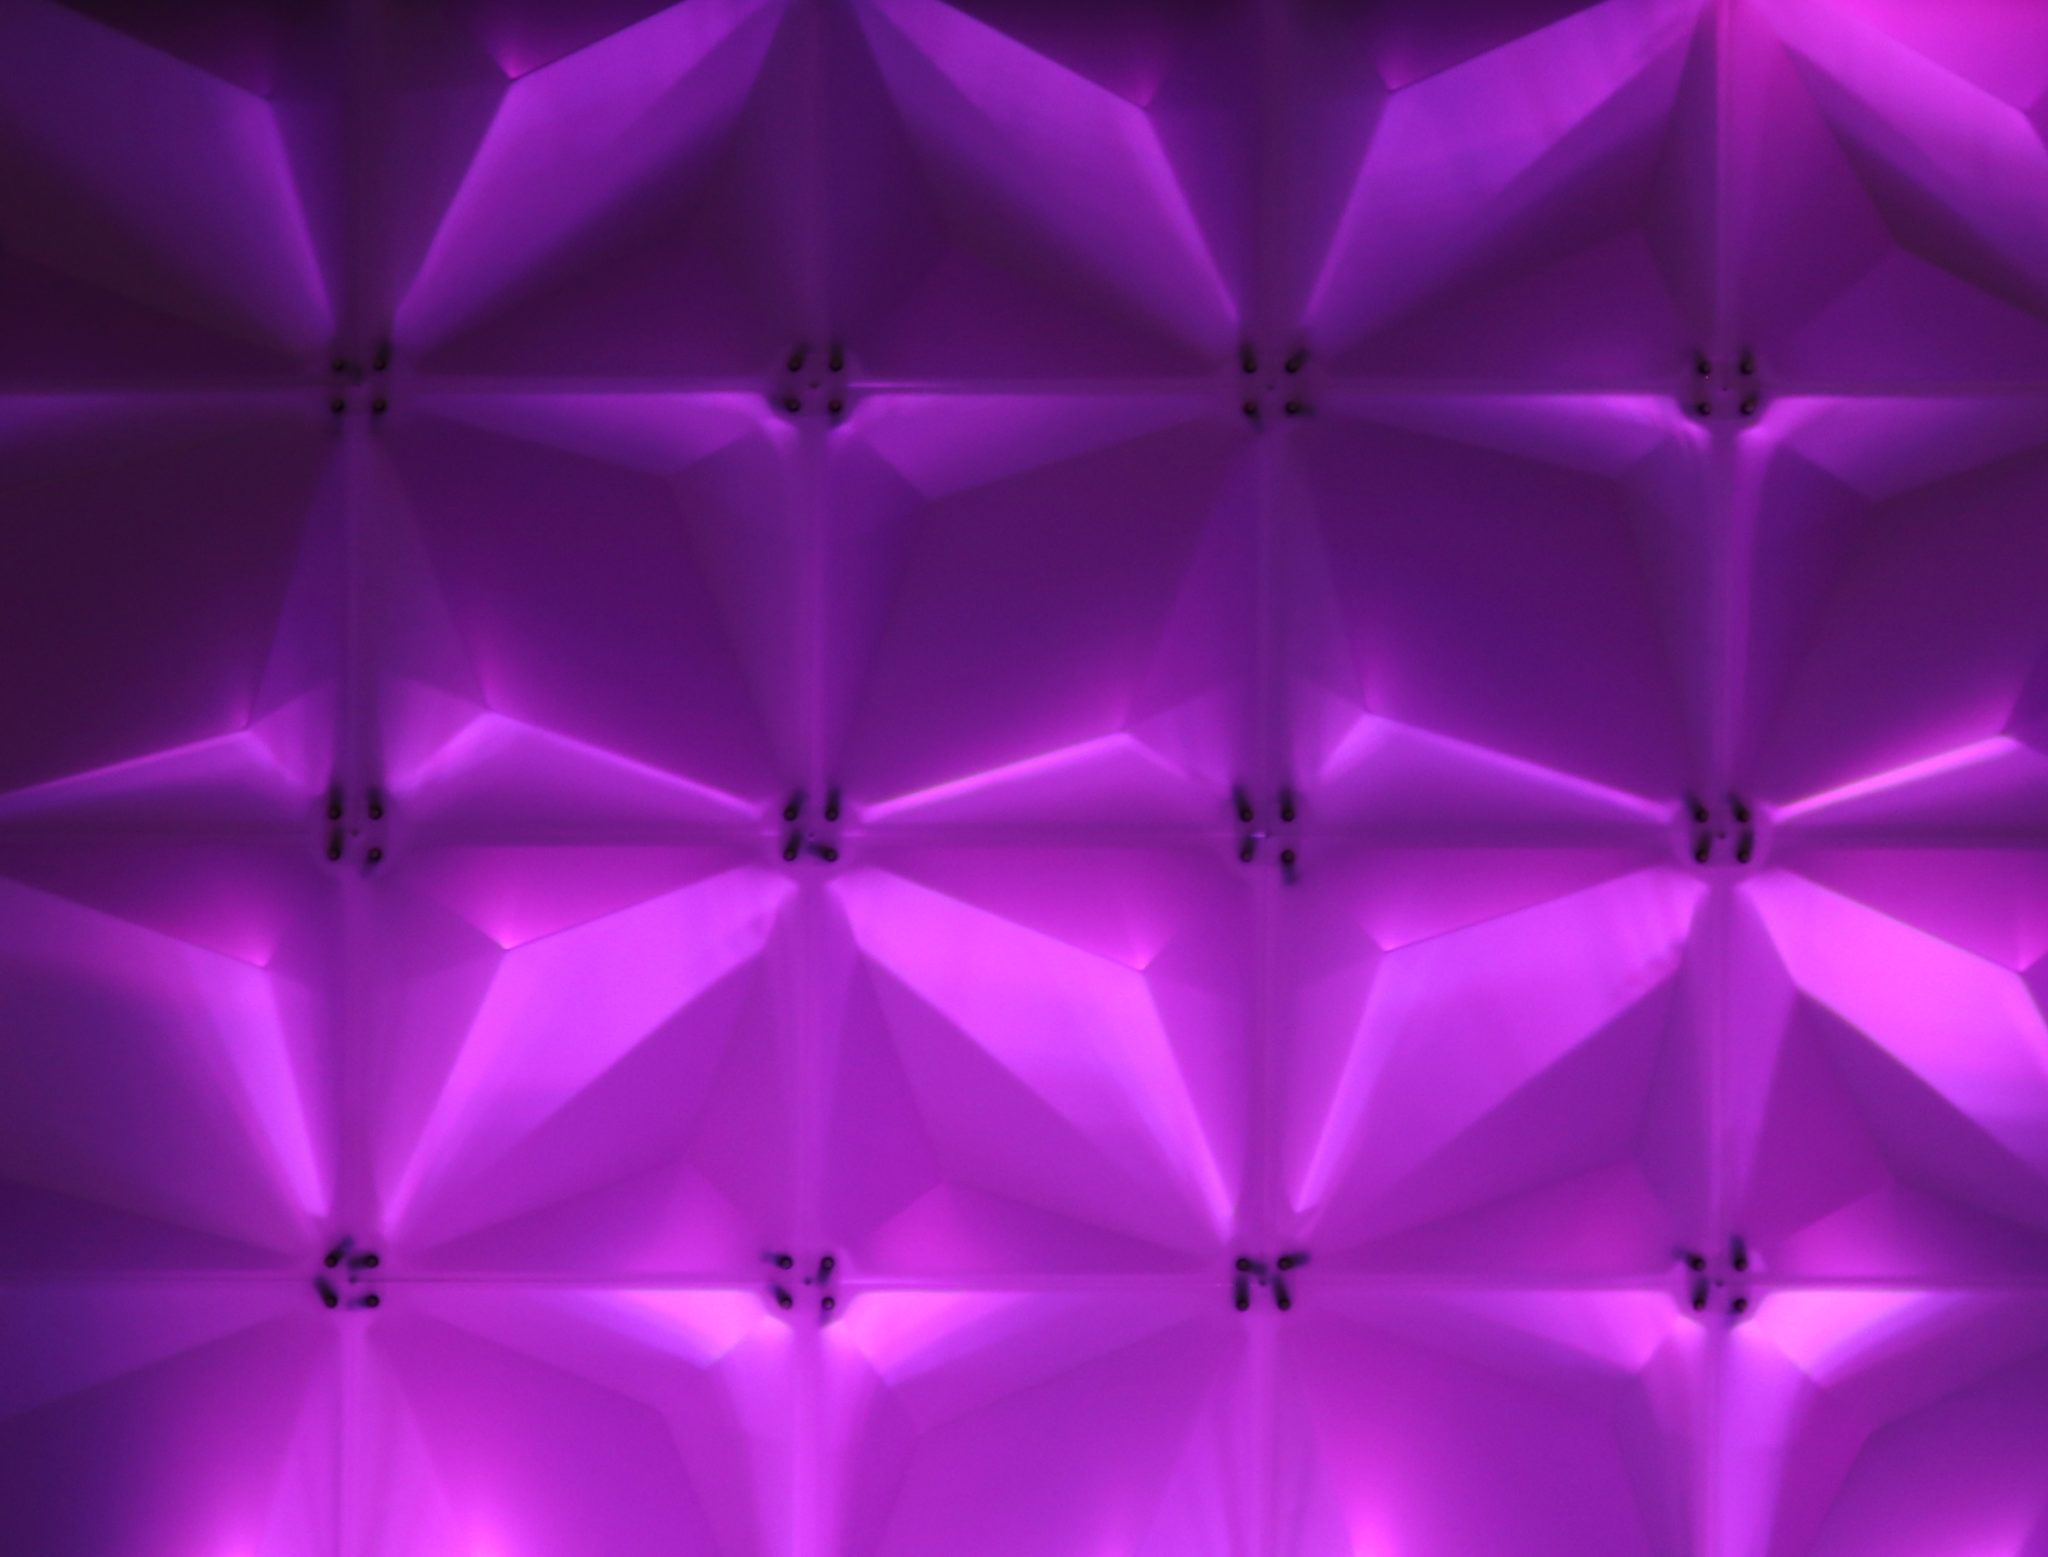 Frosted Zeddit panels with show light